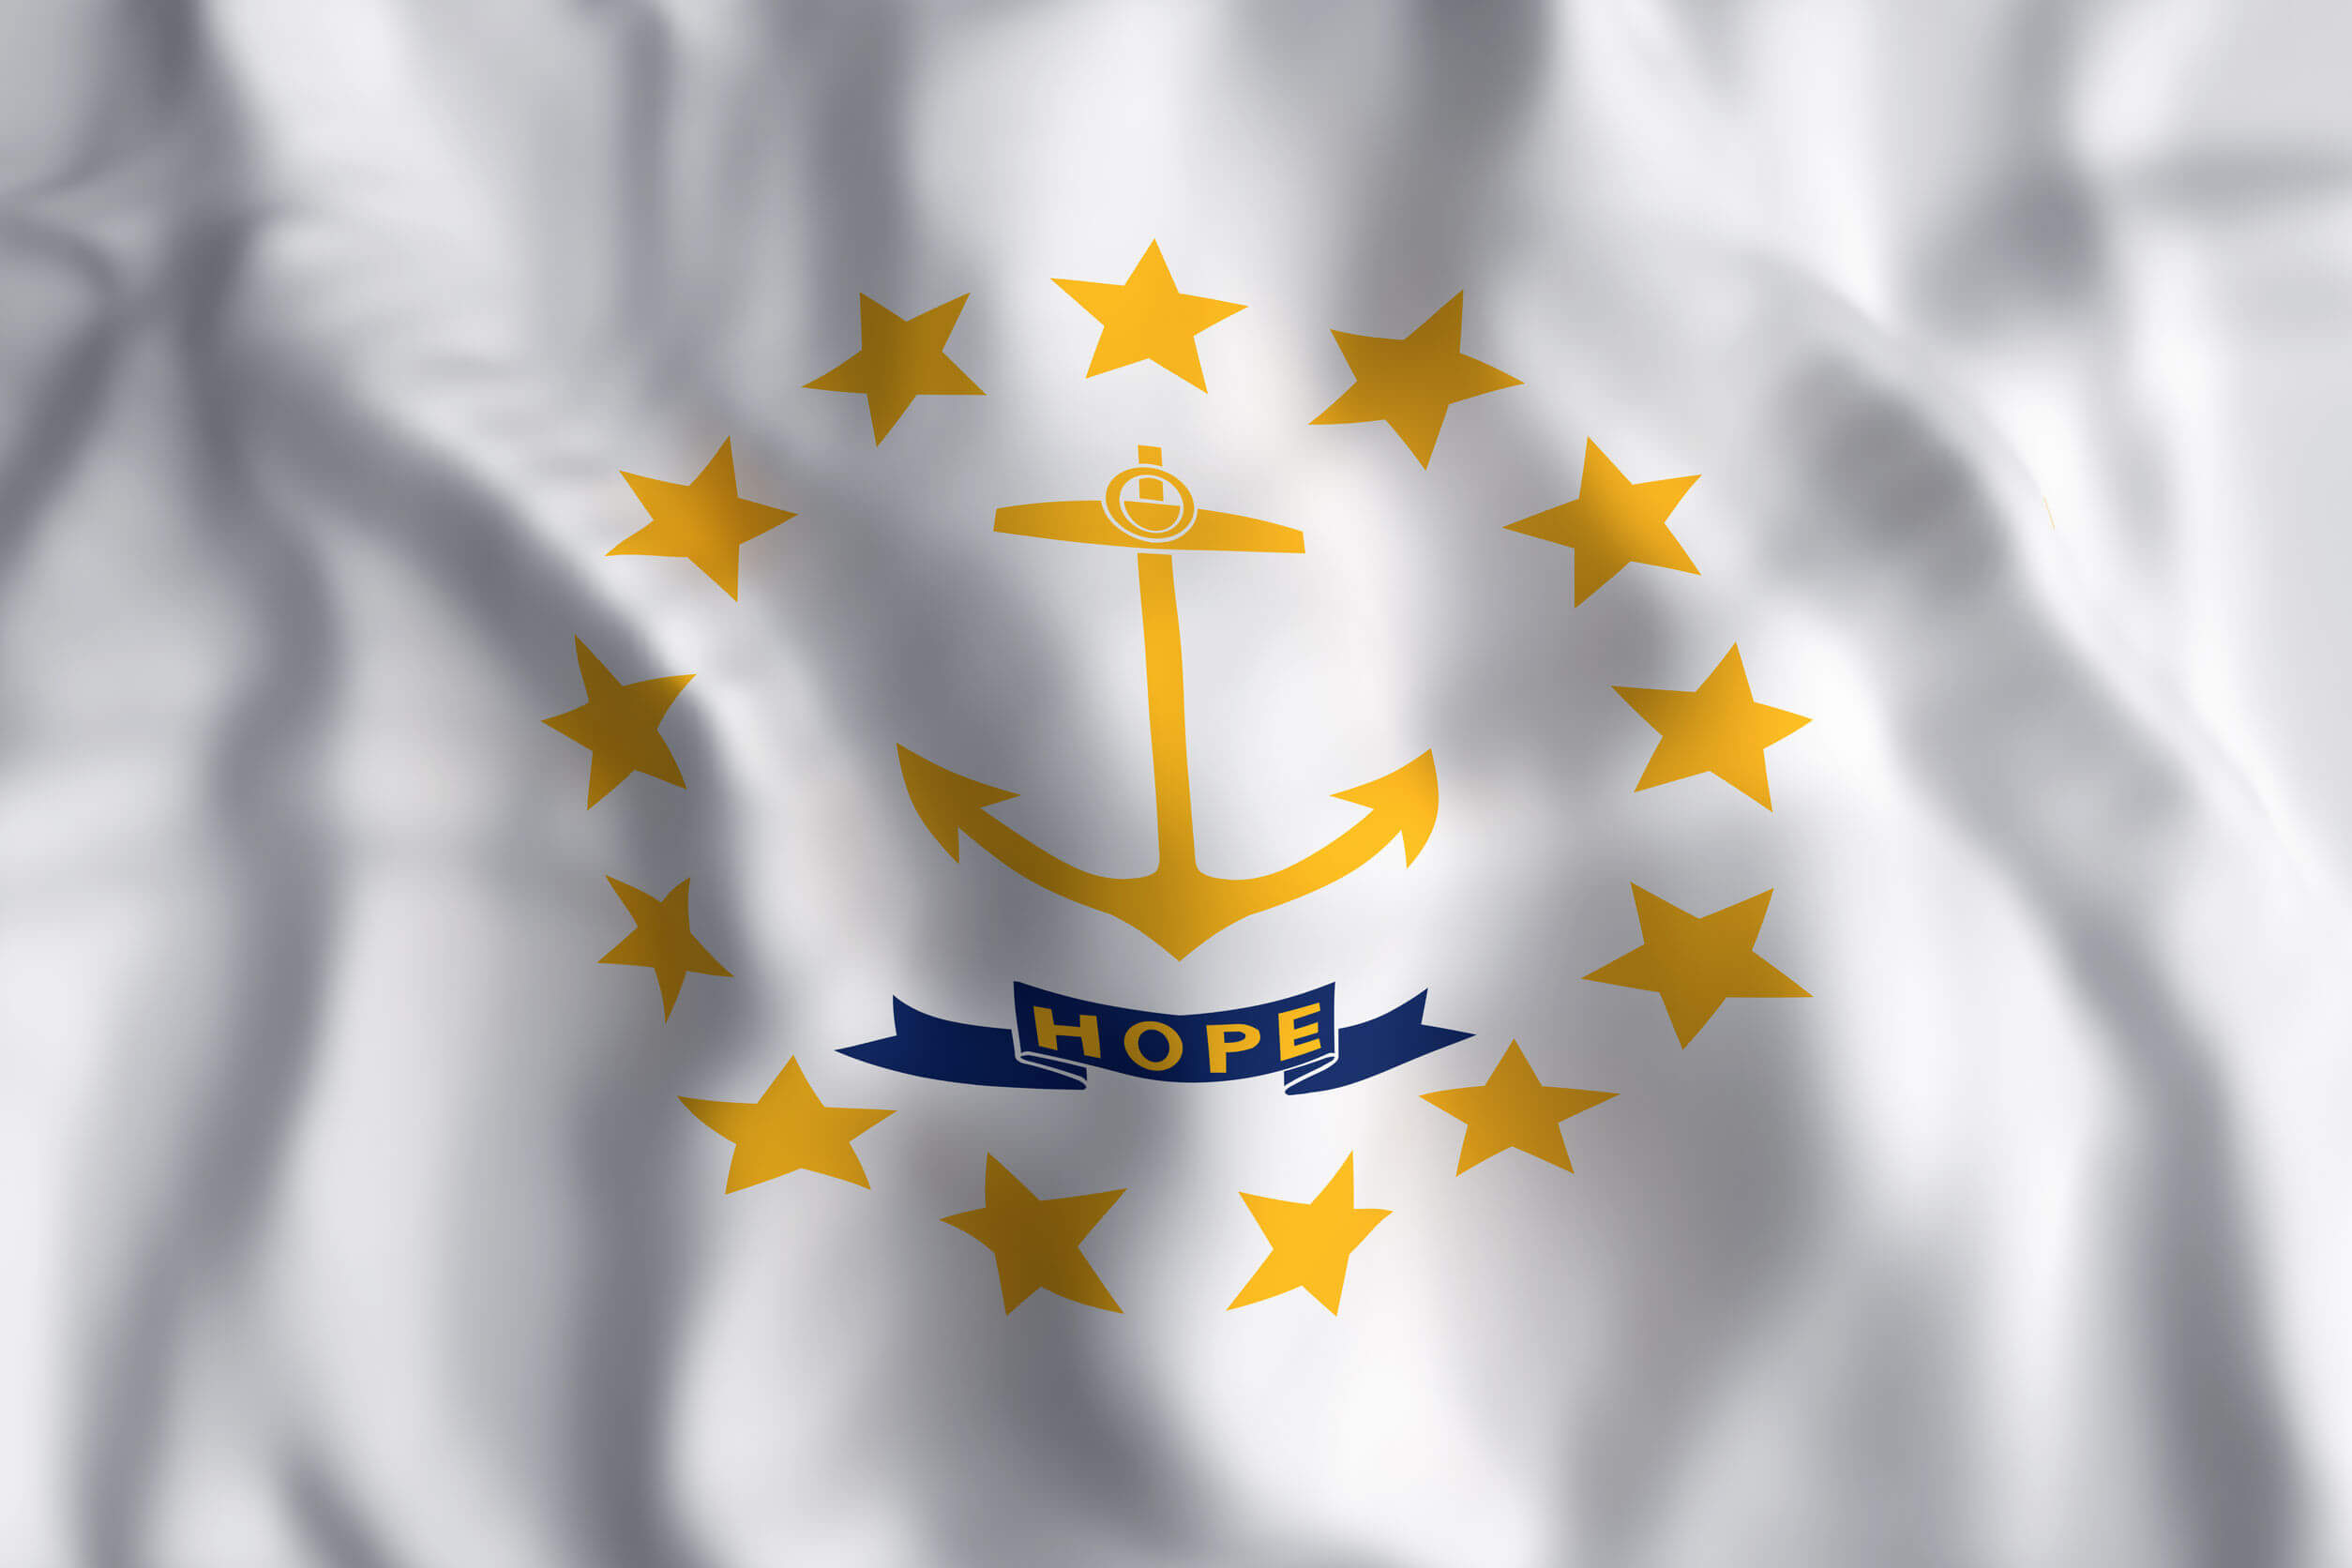 Image of Rhode Island state flag